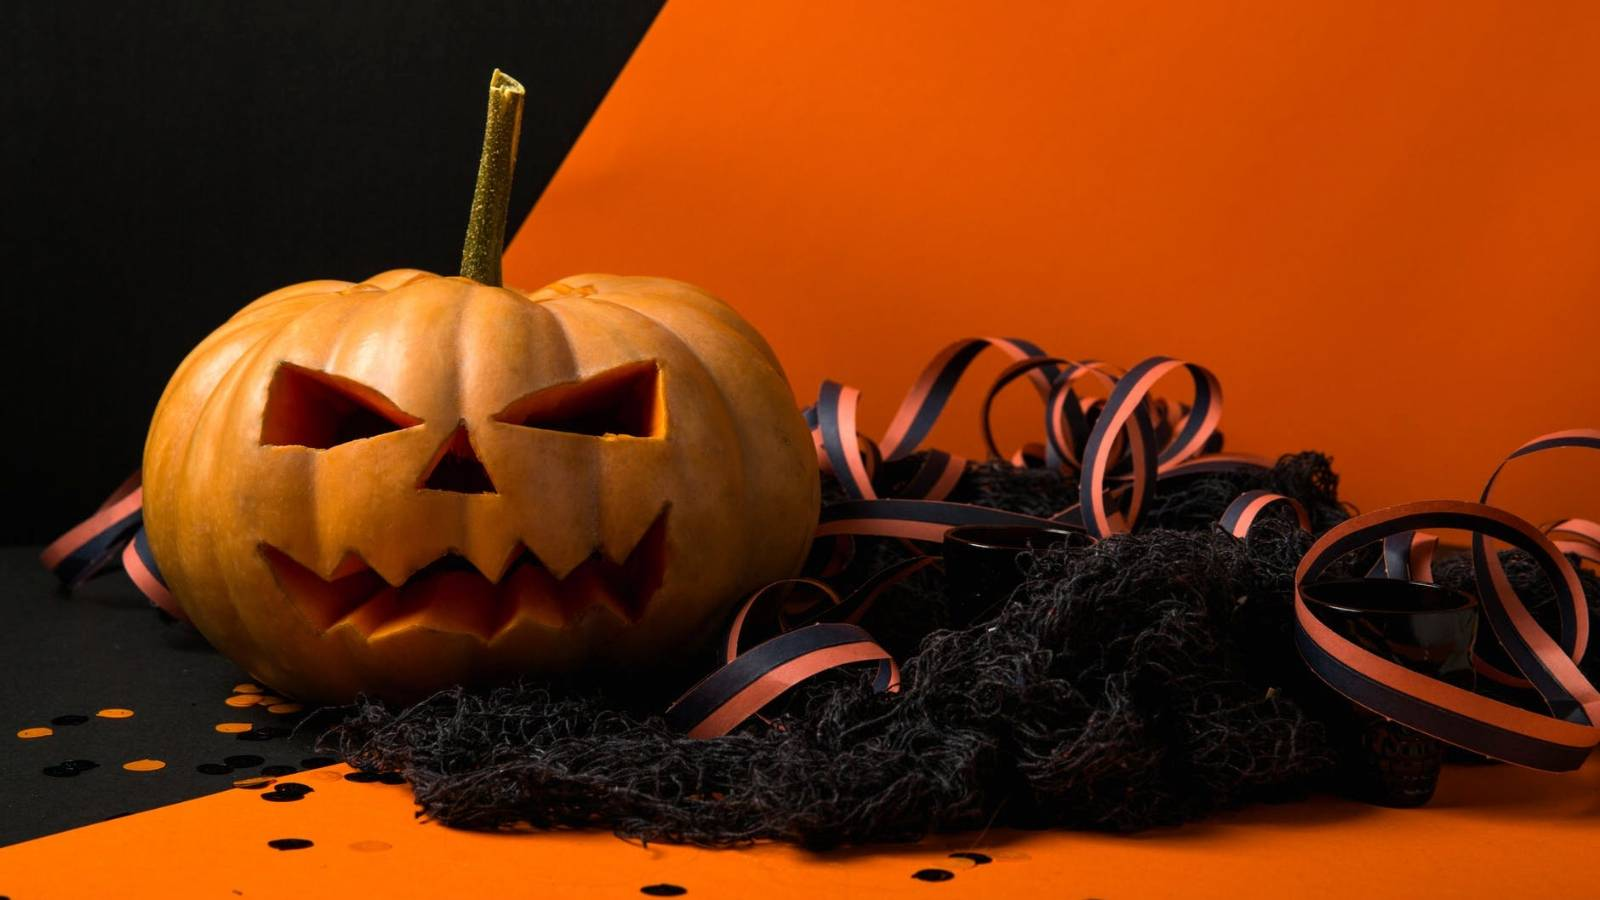 The real horror of Halloween is that we don't celebrate it